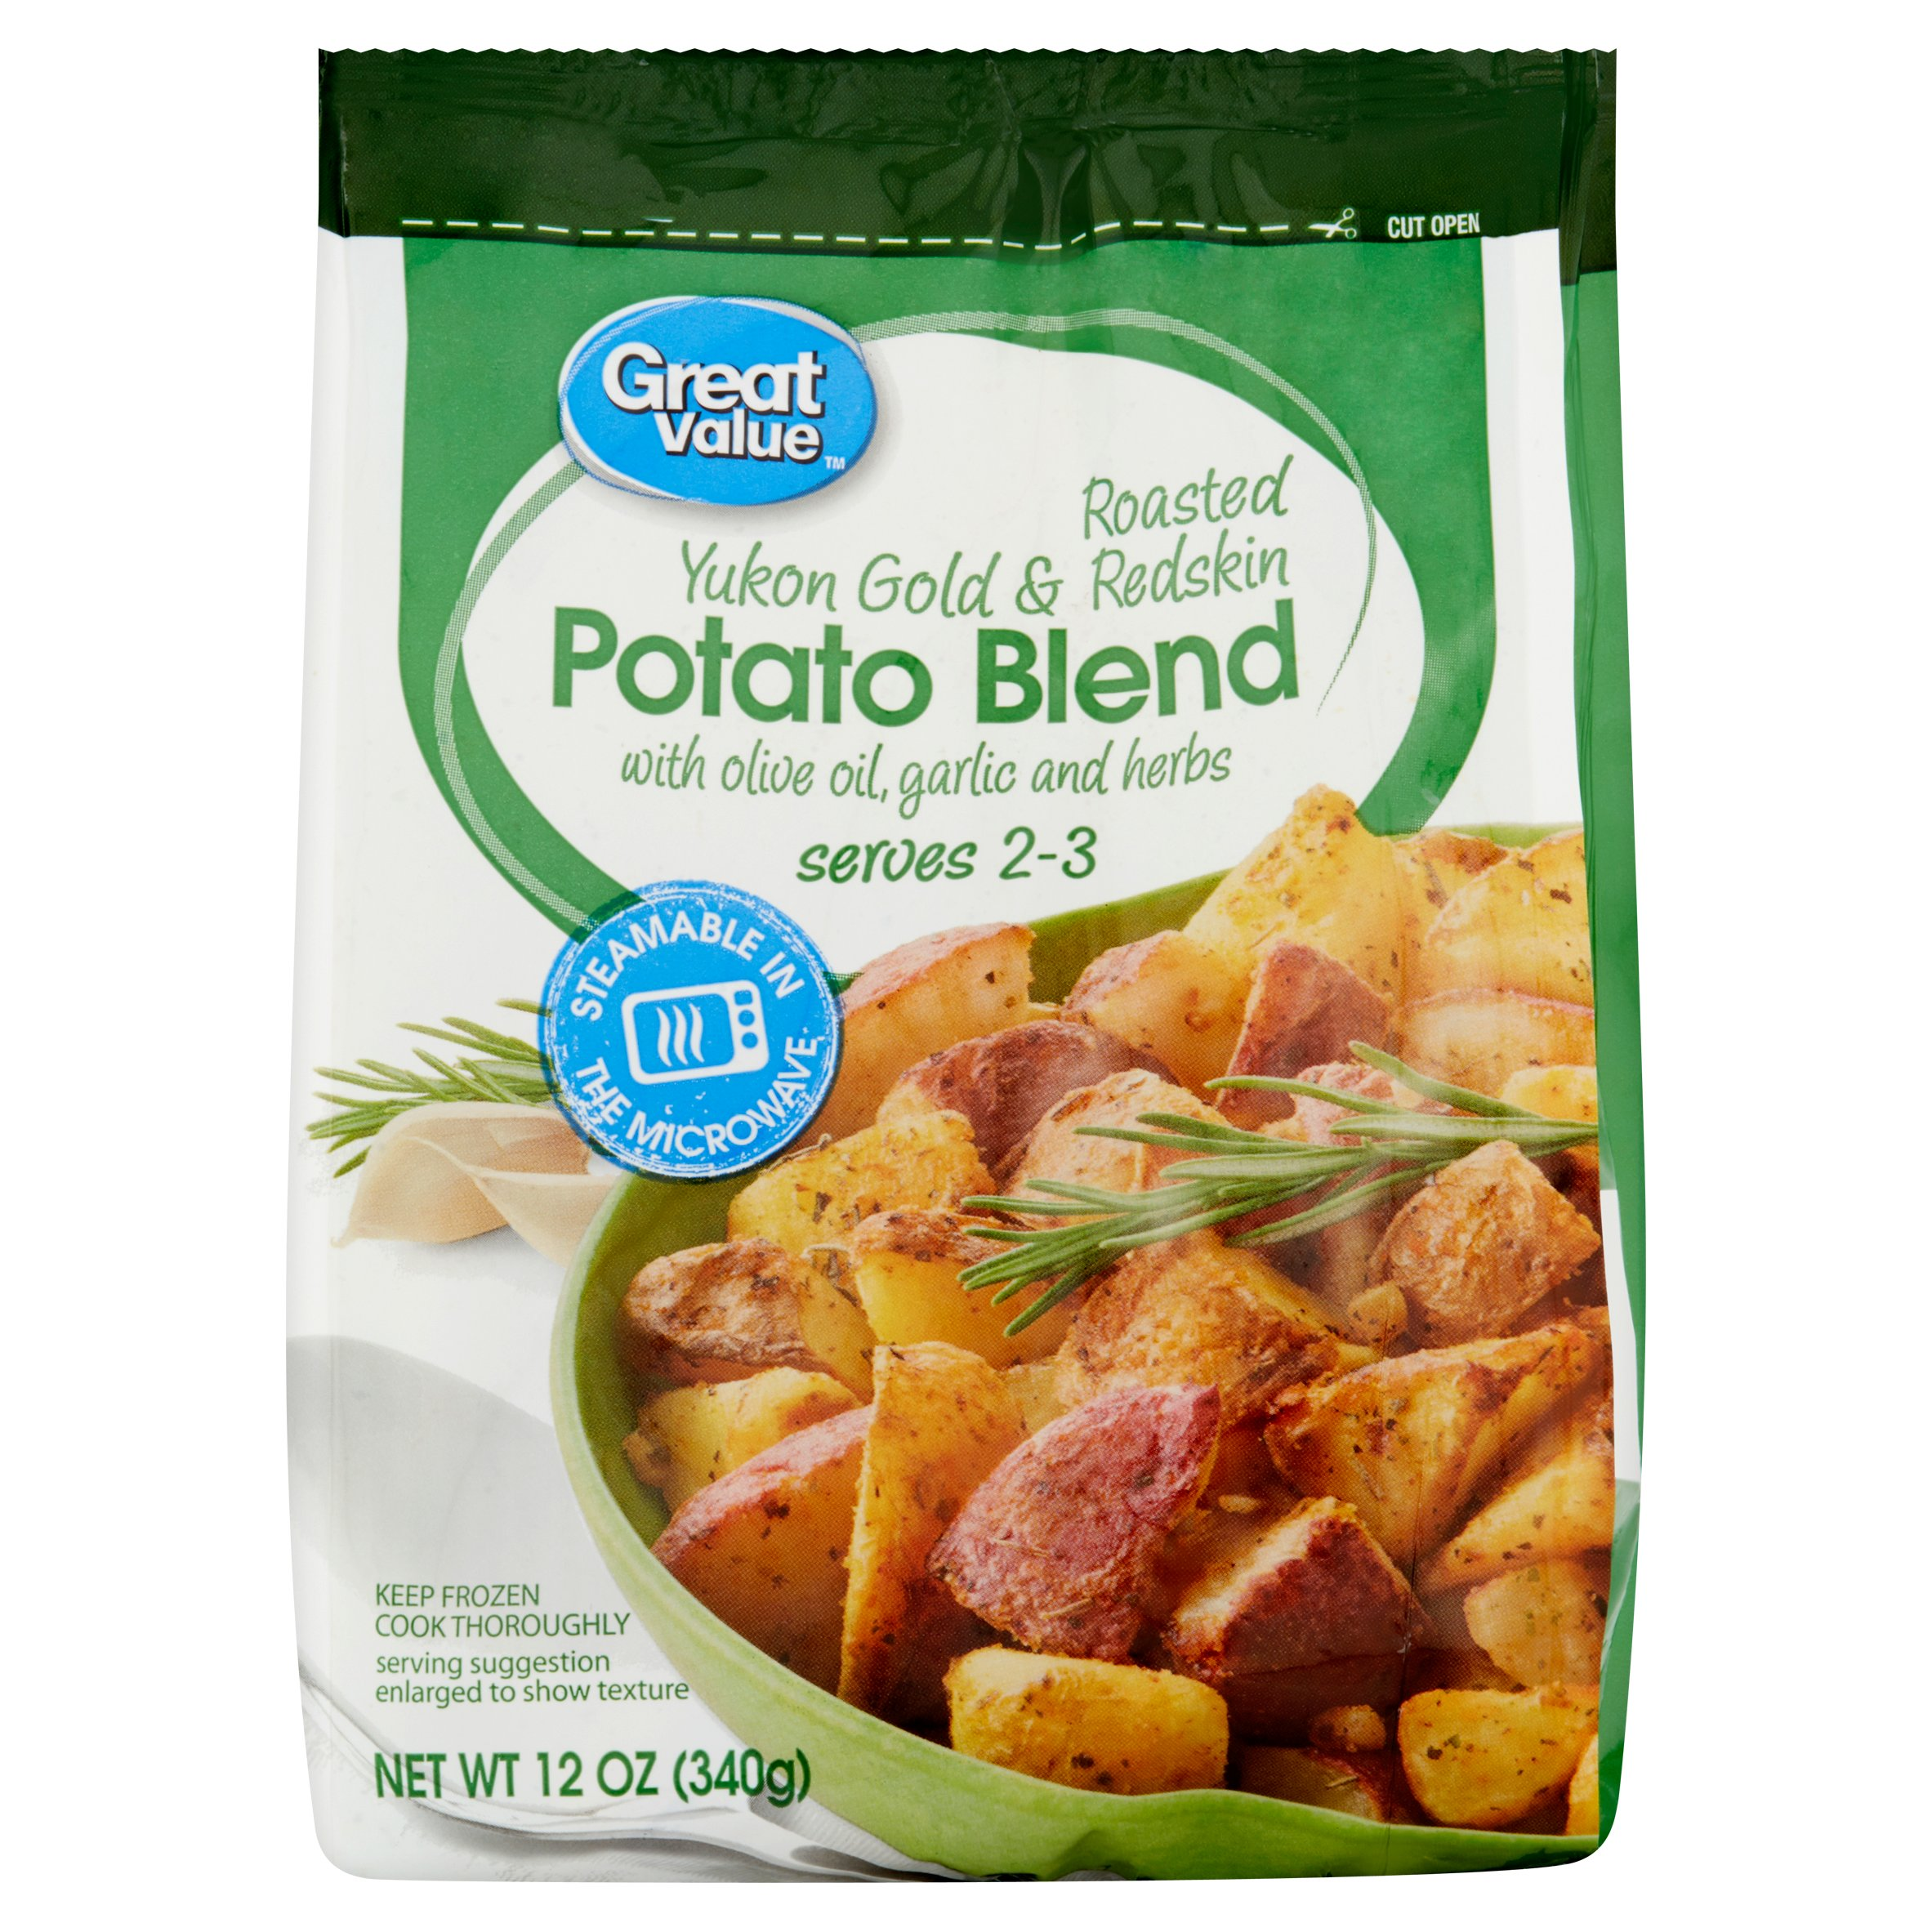 Great Value Roasted Yukon Gold & Redskin Potato Blend, 12 oz